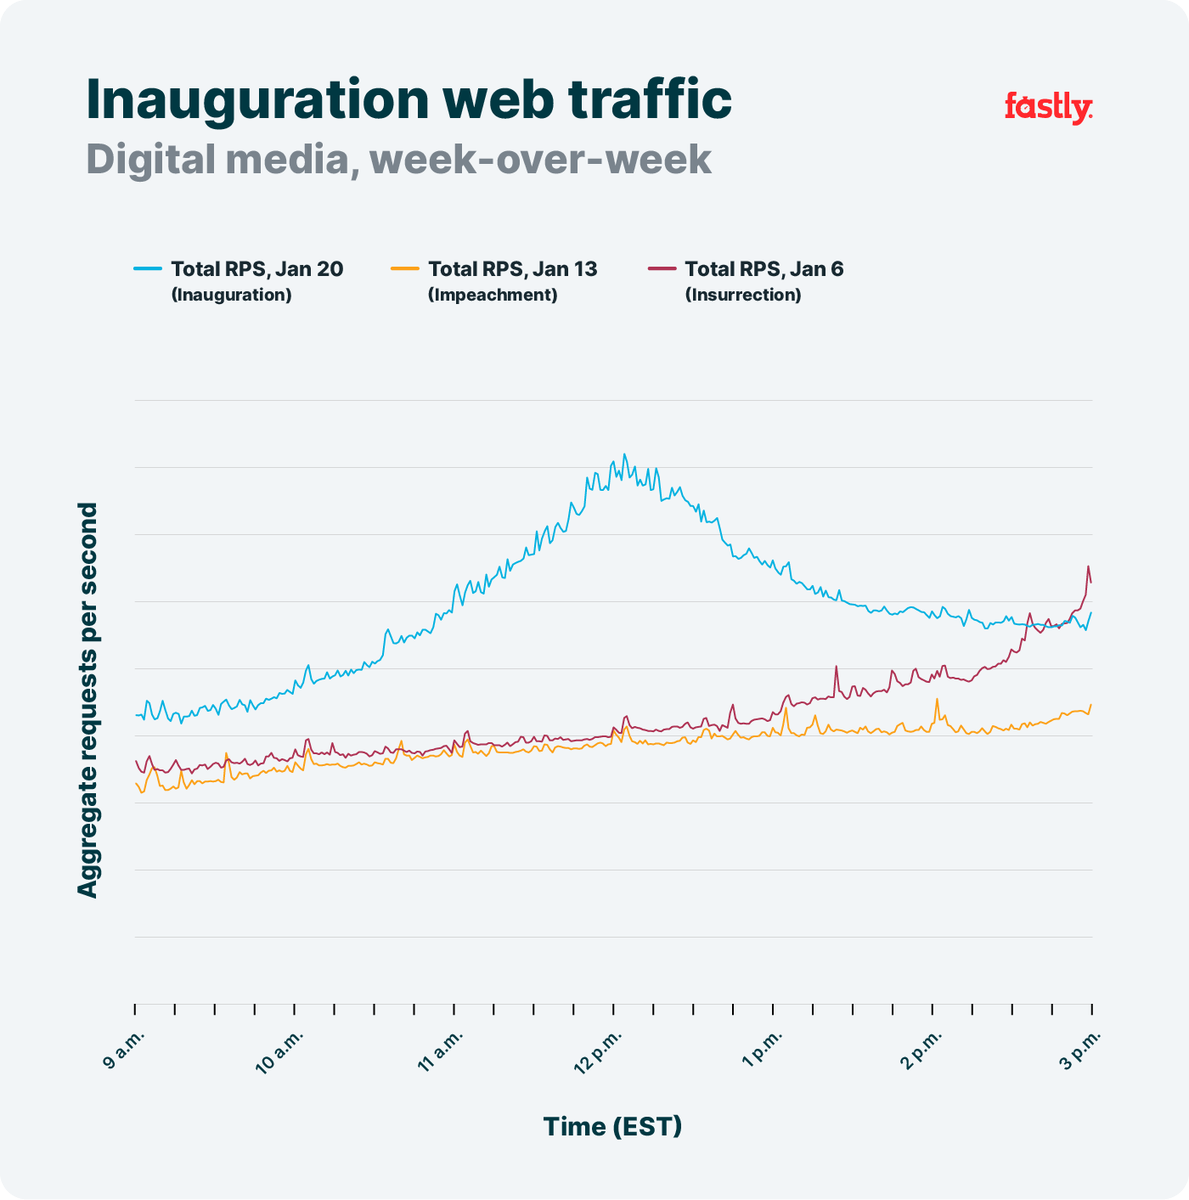 January 2021 has seen a series of historic Wednesdays. This graph shows how internet traffic trends for our digital media customers looked on January 6, January 13, and January 20.  Read on for more traffic trends during #Inauguration2021: https://t.co/lKk408K51Y https://t.co/3QFCgHmE19